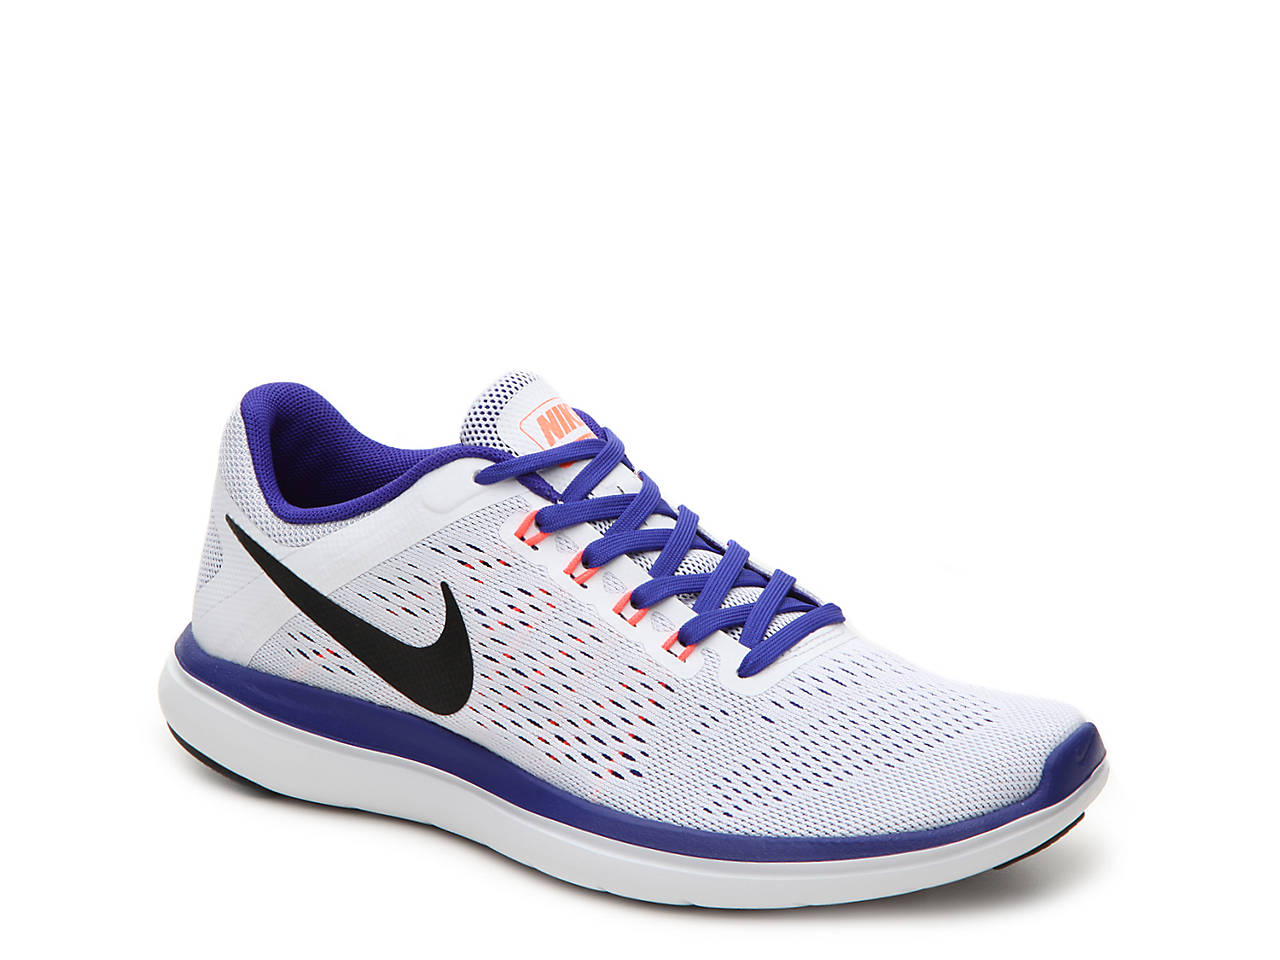 65feeb41e Nike Flex 2016 RN Lightweight Running Shoe - Women s Men s Handbags ...